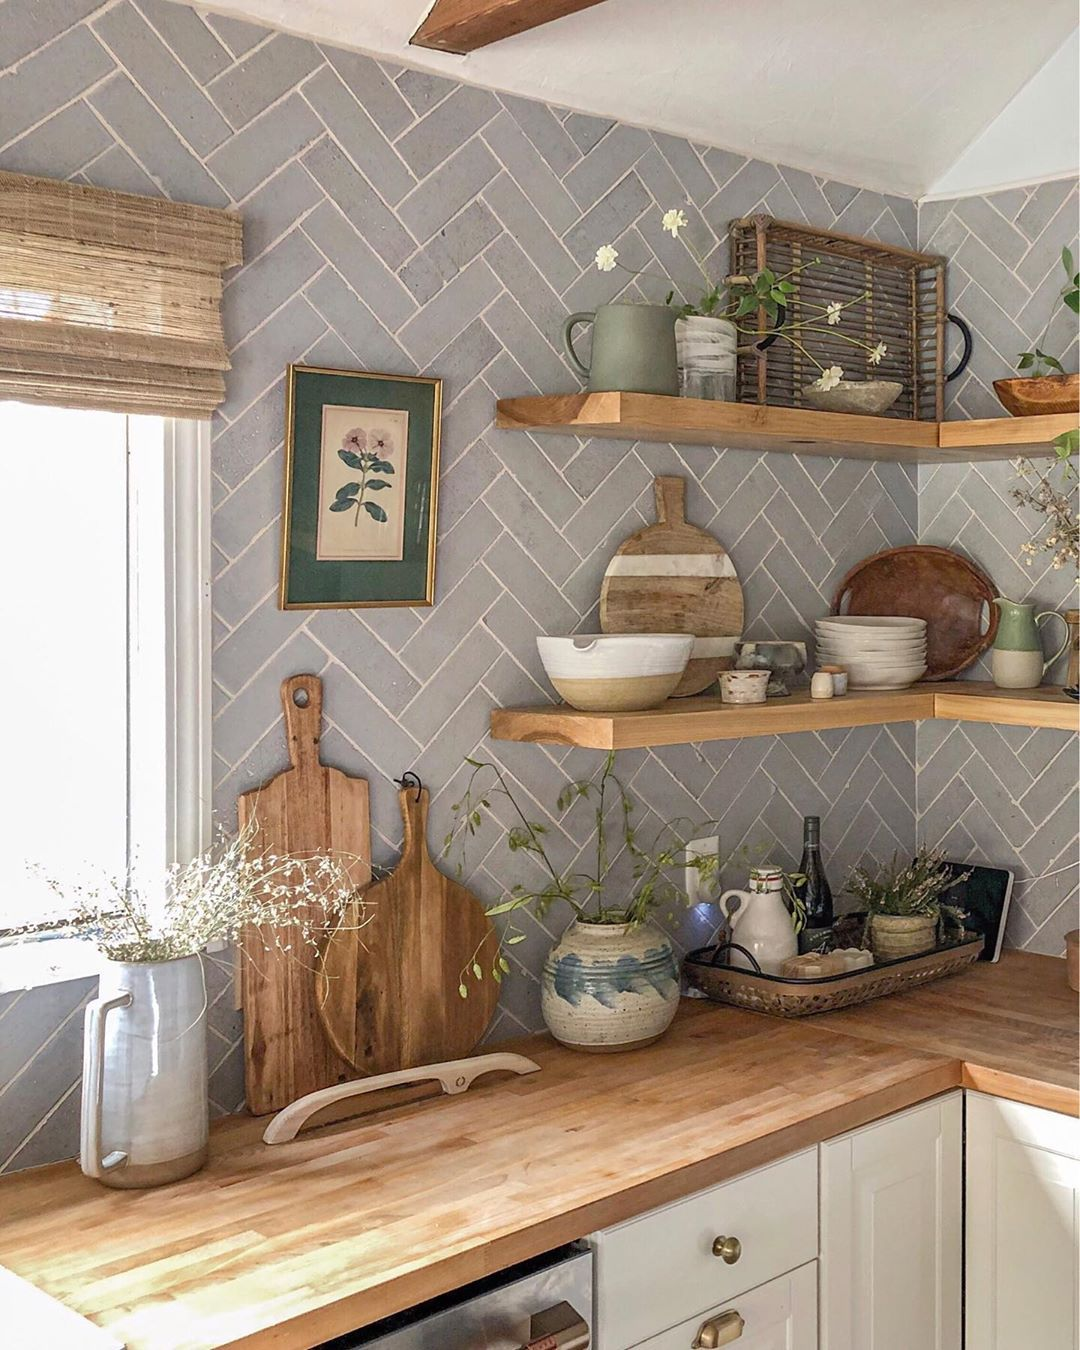 """Photo of emily starr alfano / mStarr on Instagram: """"KITCHEN SHELF STYLING TIPS ! 👇🏻 i spent a couple days this week restyling ours. they feel lighter + airier, and more well-rounded. the…"""""""